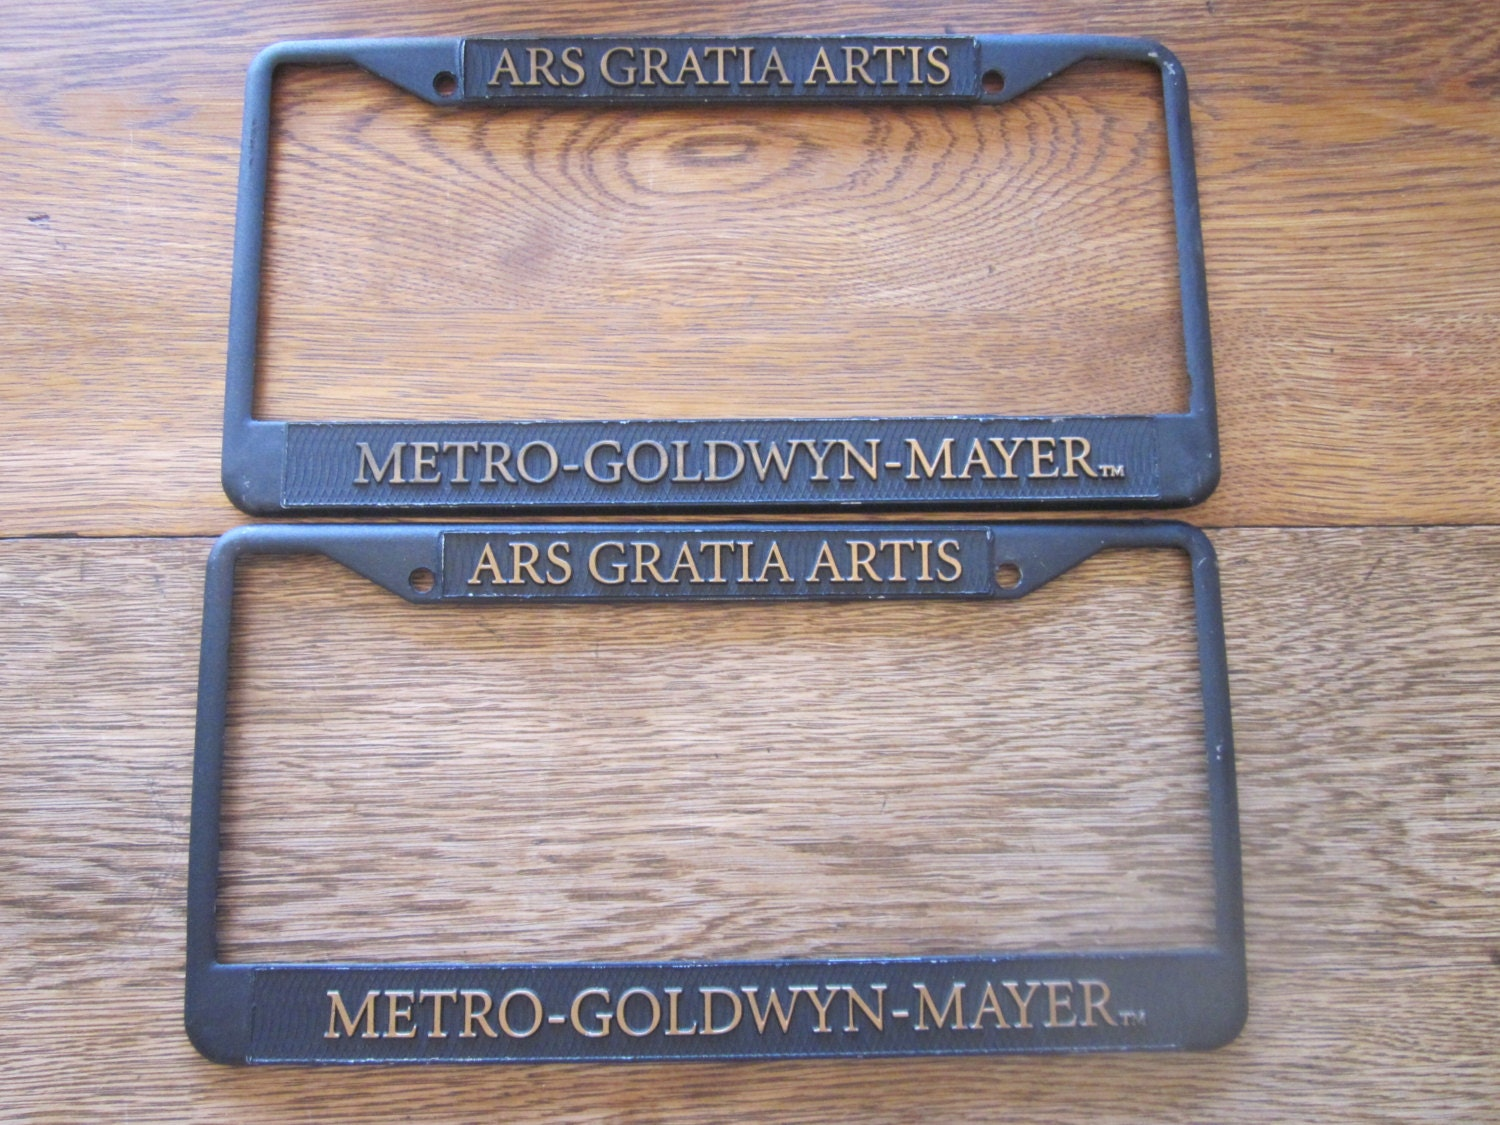 metro goldwyn mayer ars gratia artis license plate frames. Black Bedroom Furniture Sets. Home Design Ideas